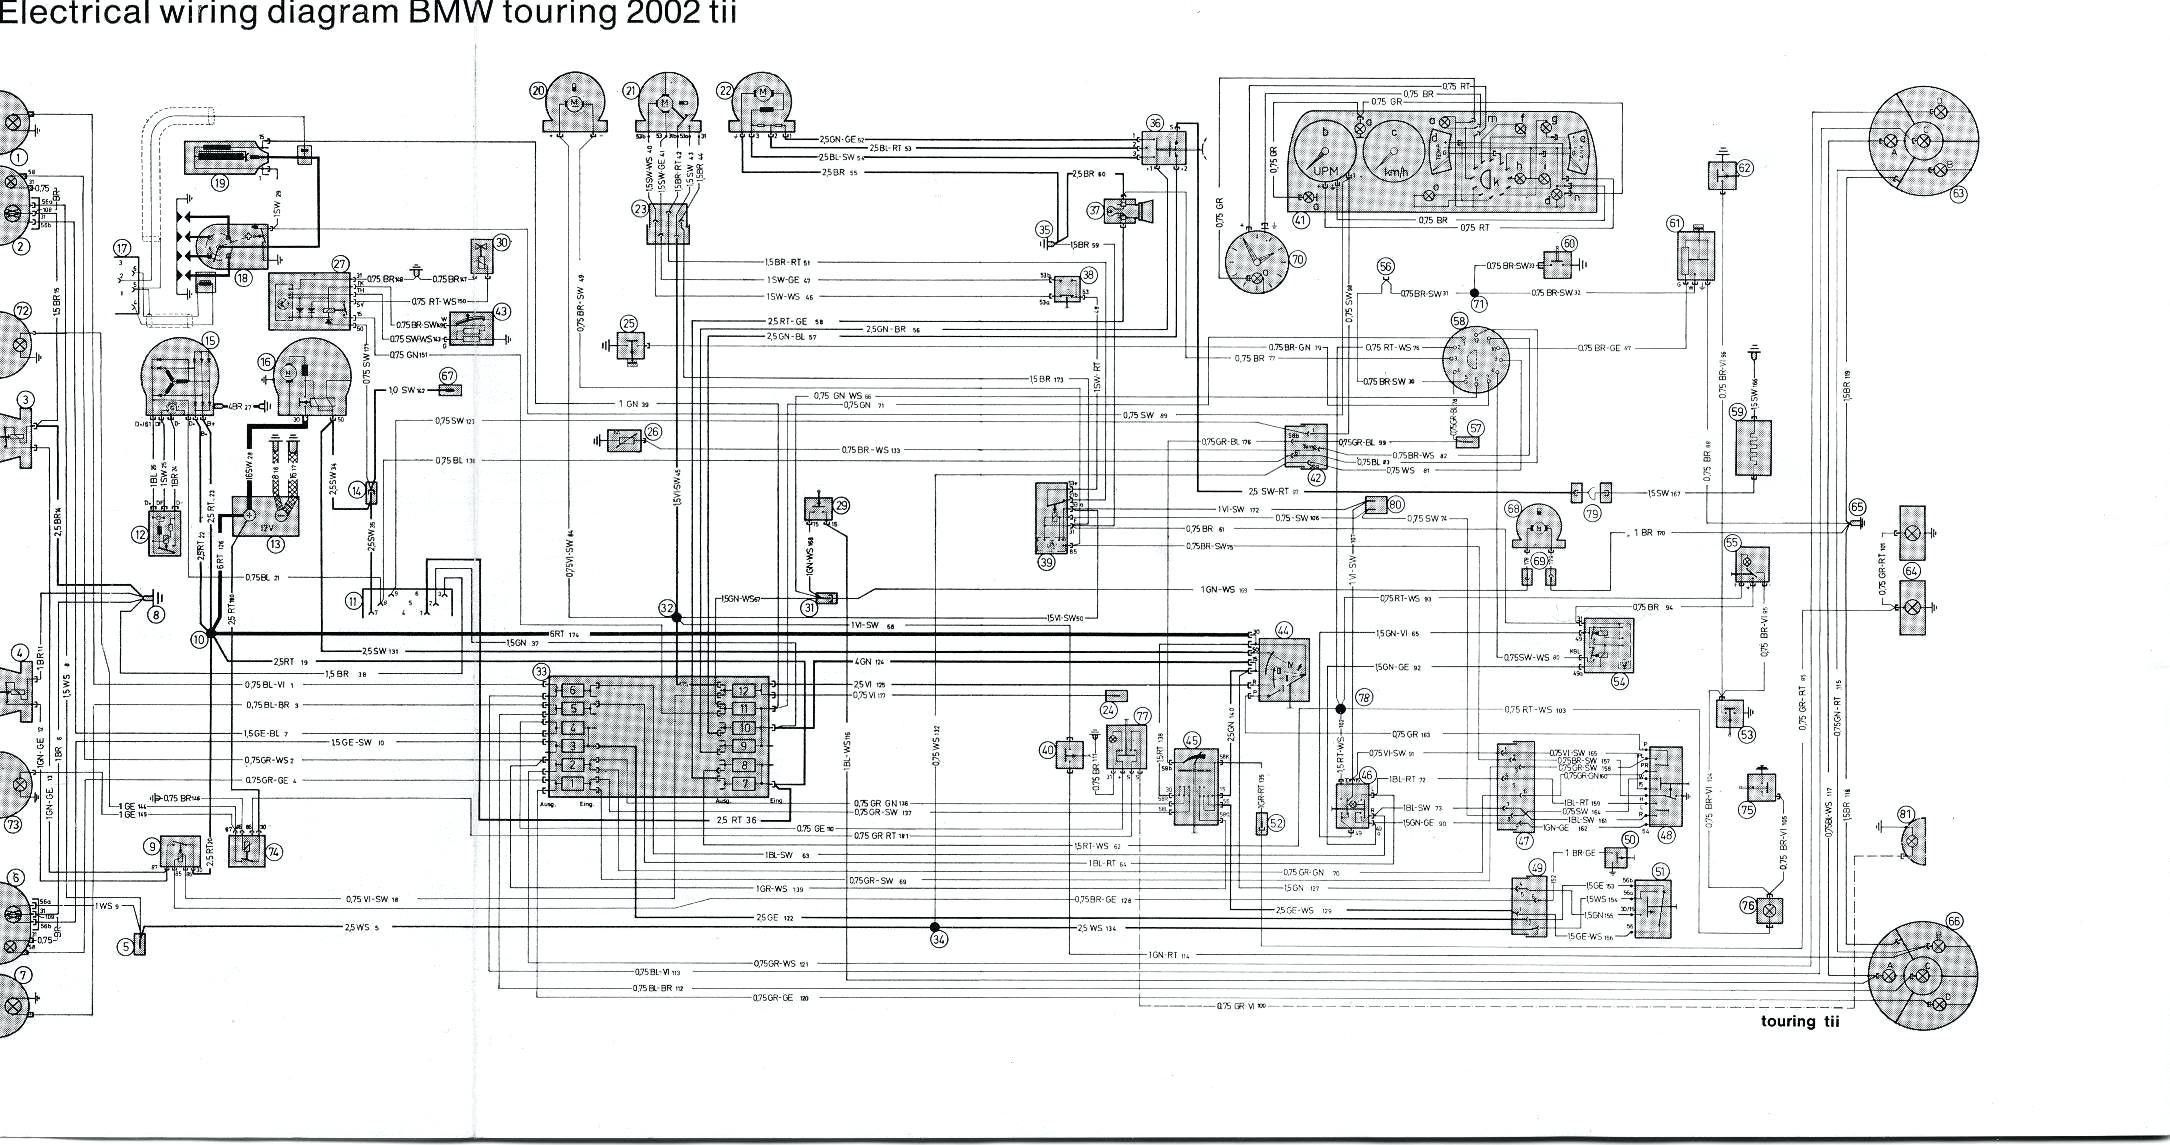 hight resolution of new bmw e46 seat wiring diagram diagram diagramtemplatenew bmw e46 seat wiring diagram diagram diagramtemplate diagramsample